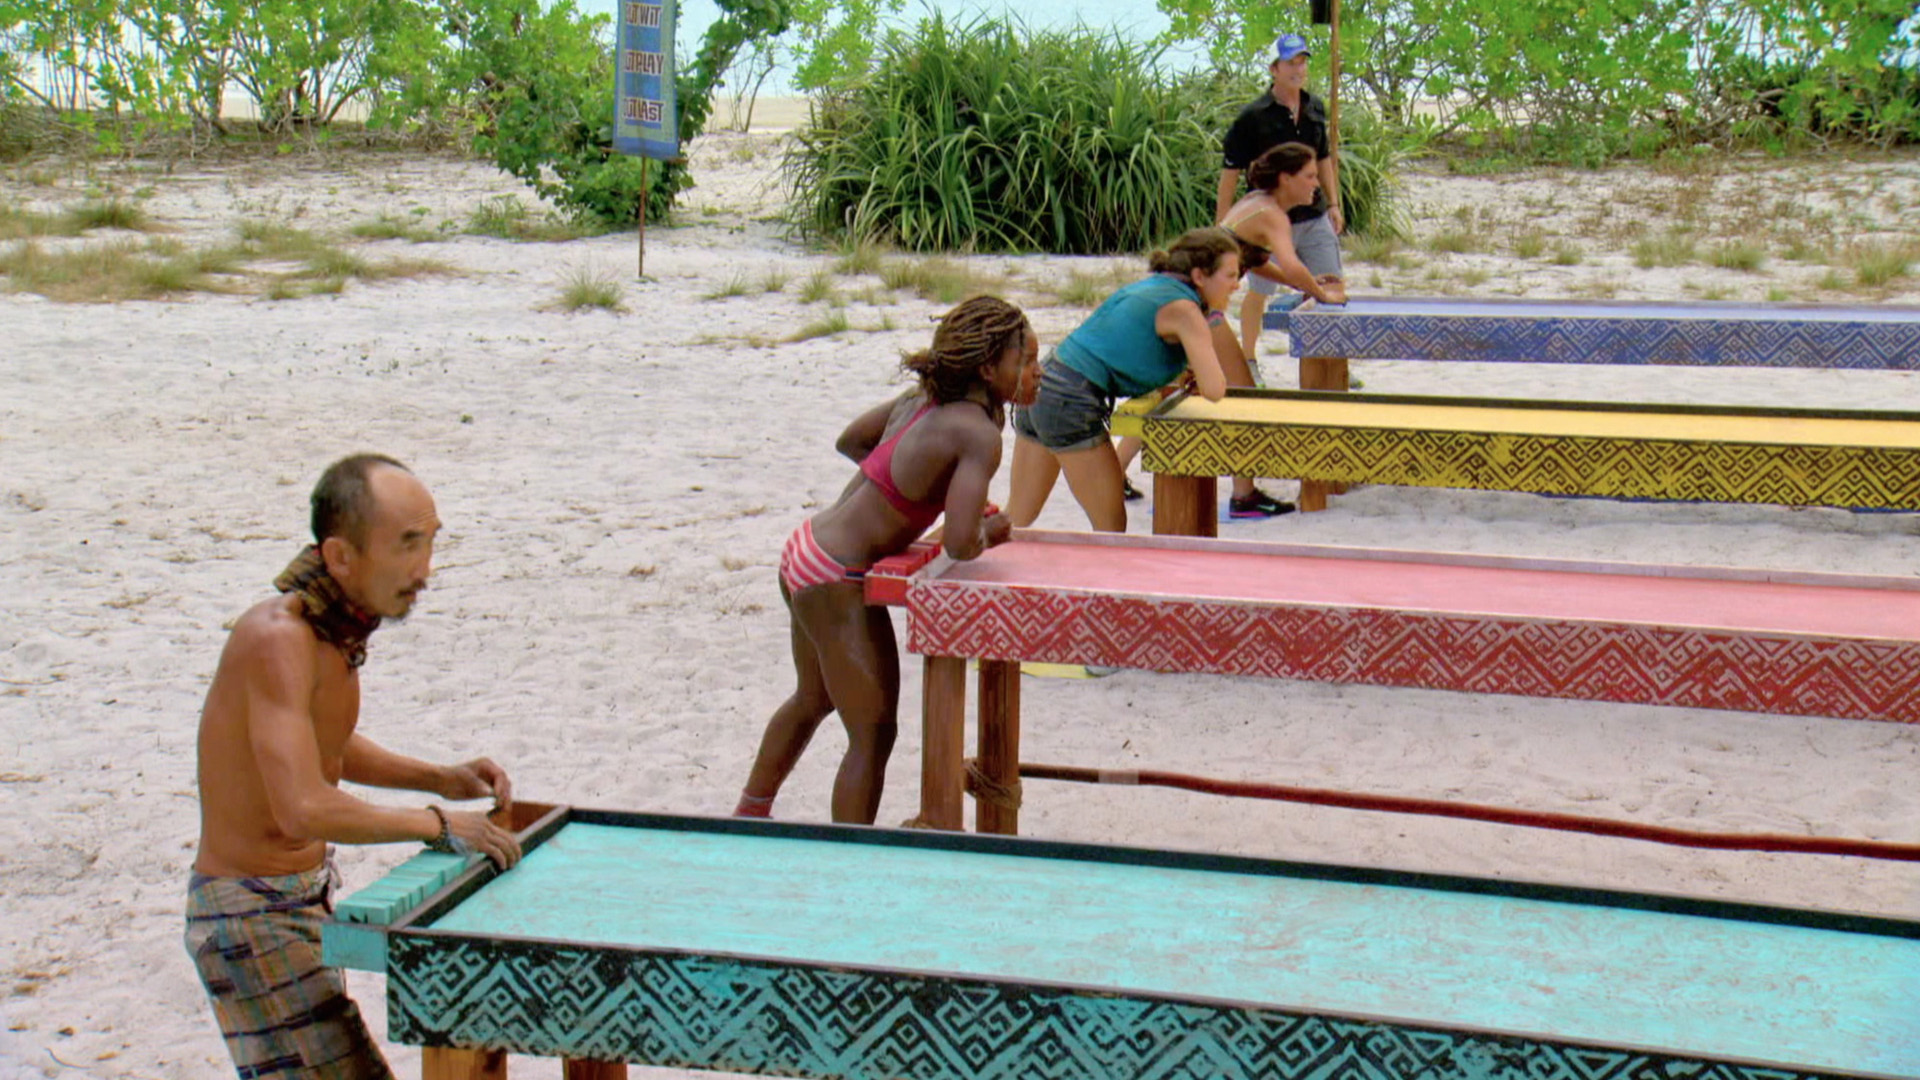 The castaways are tasked with sliding tiles into a target.